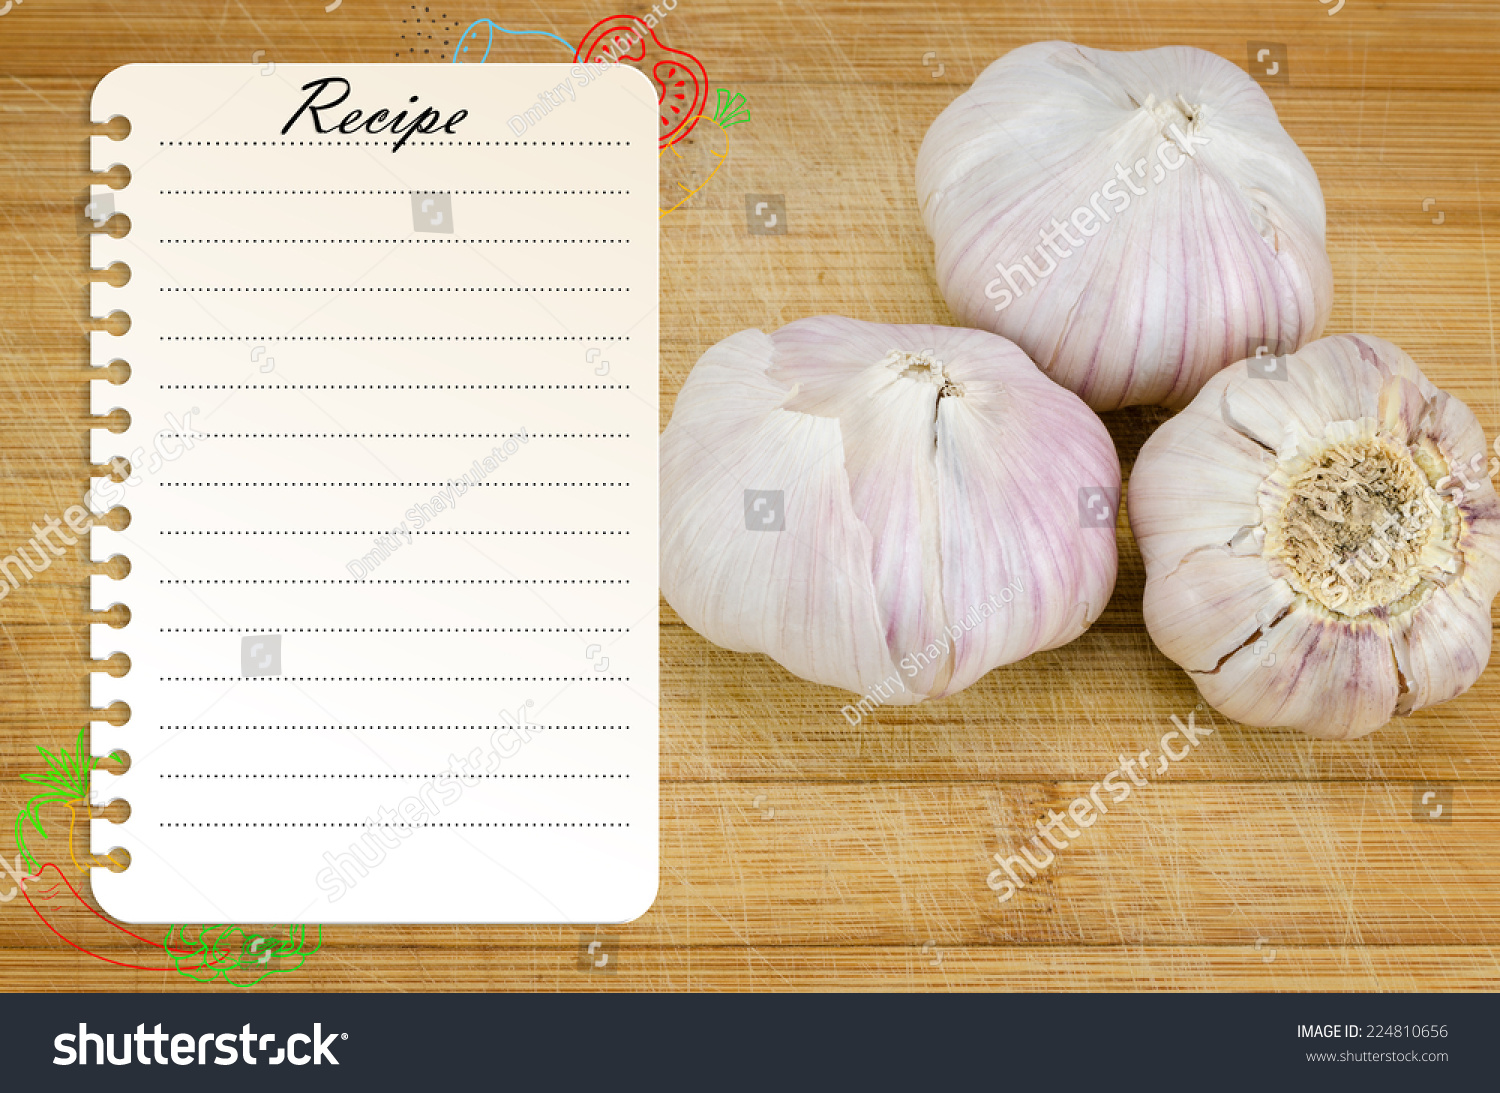 Recipe Page Template Design On Wooden Stock Photo Royalty Free